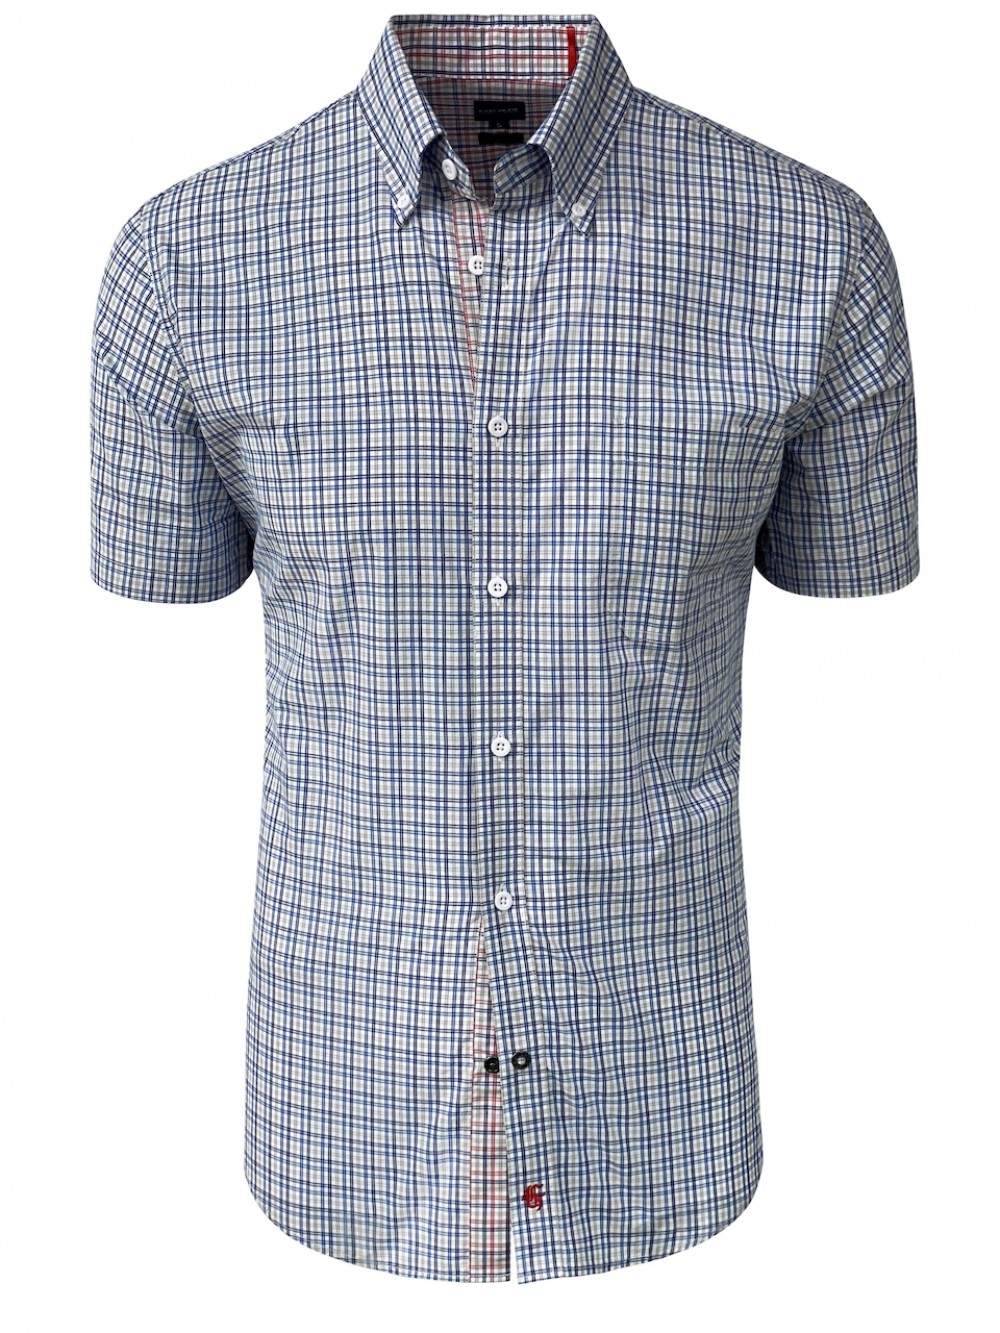 Mens Slim fit Shirt ALESSIO SHM1296 grey